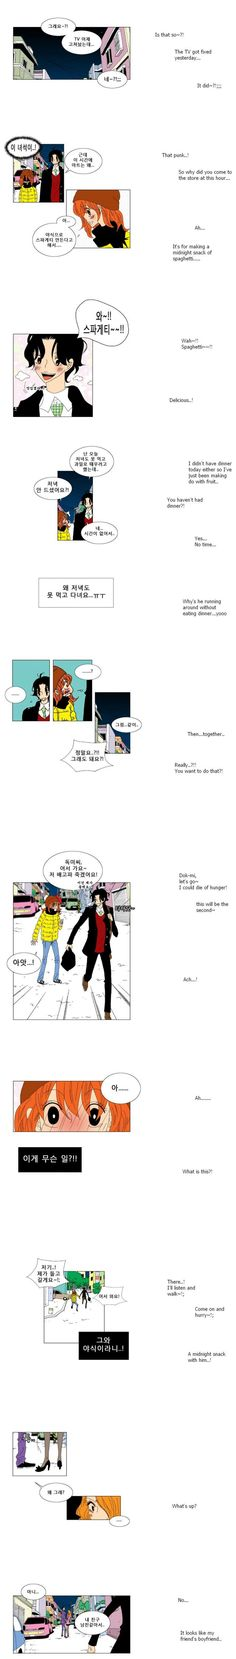 [Webtoon] I Sneak A Peak At Him Every Day 16 @ HanCinema :: The Korean Movie and Drama Database